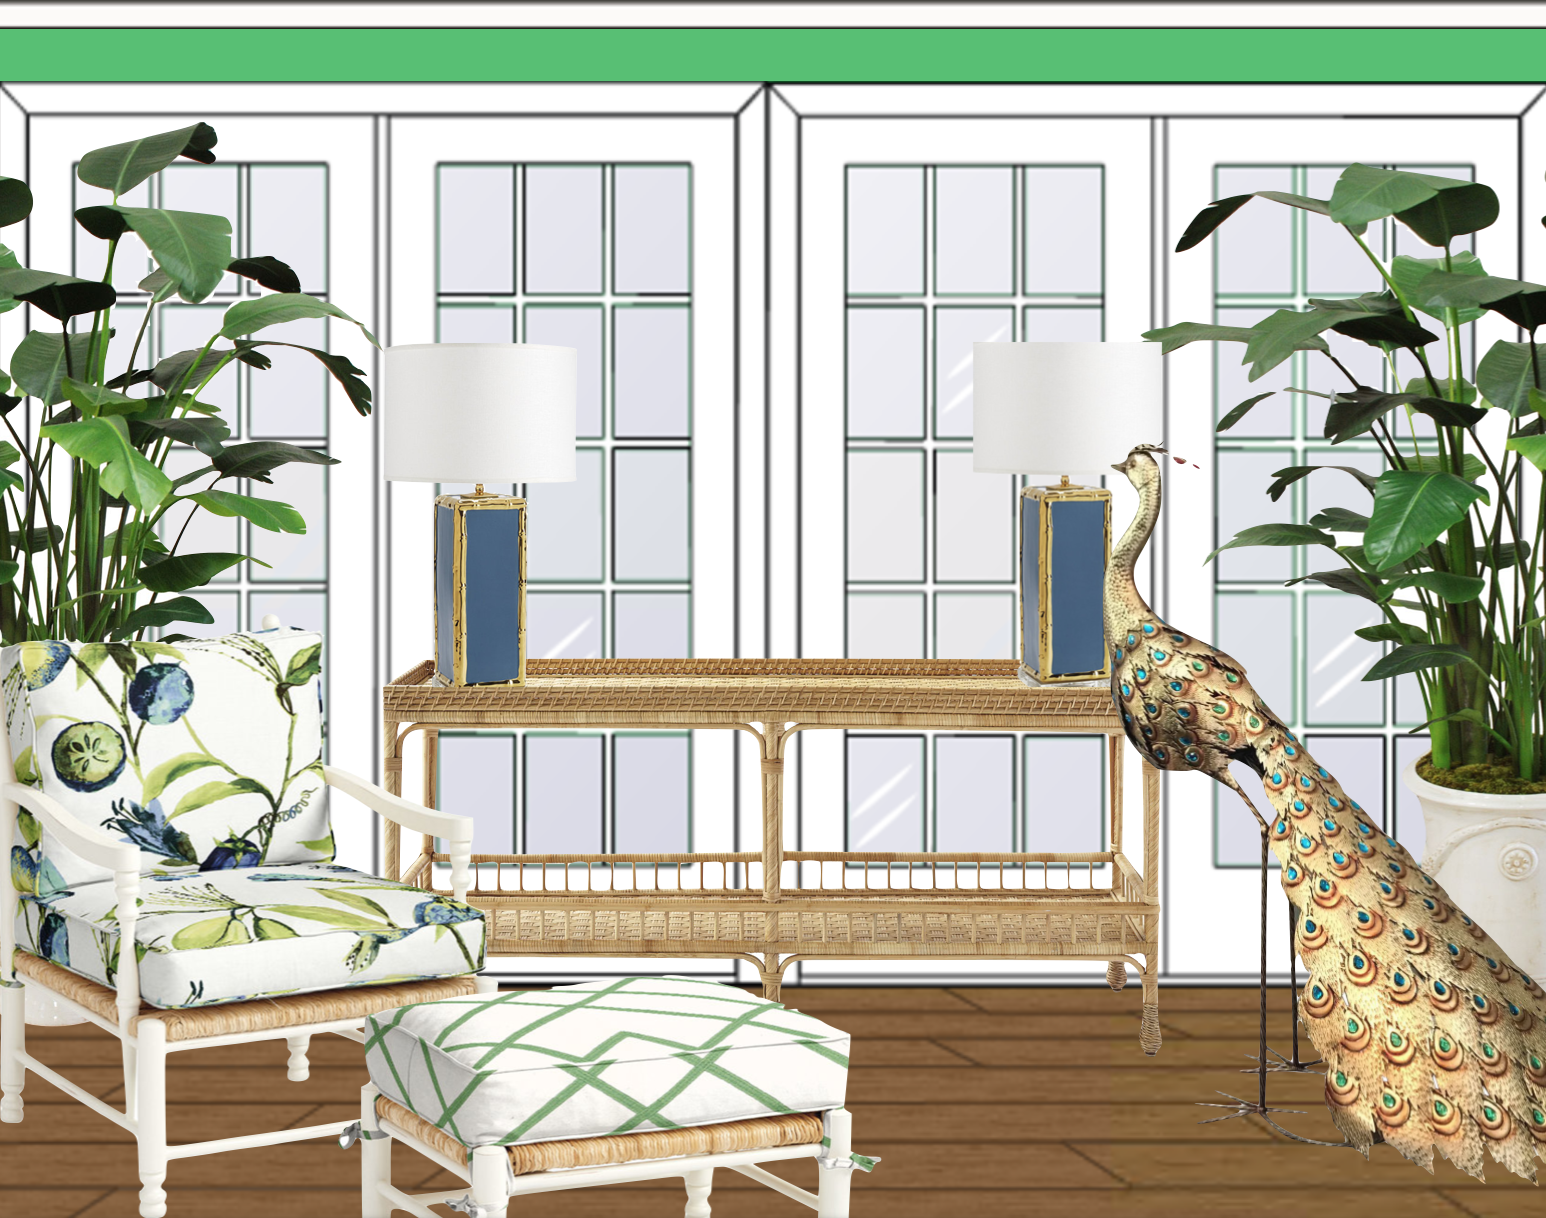 Conservatory with statement peacock